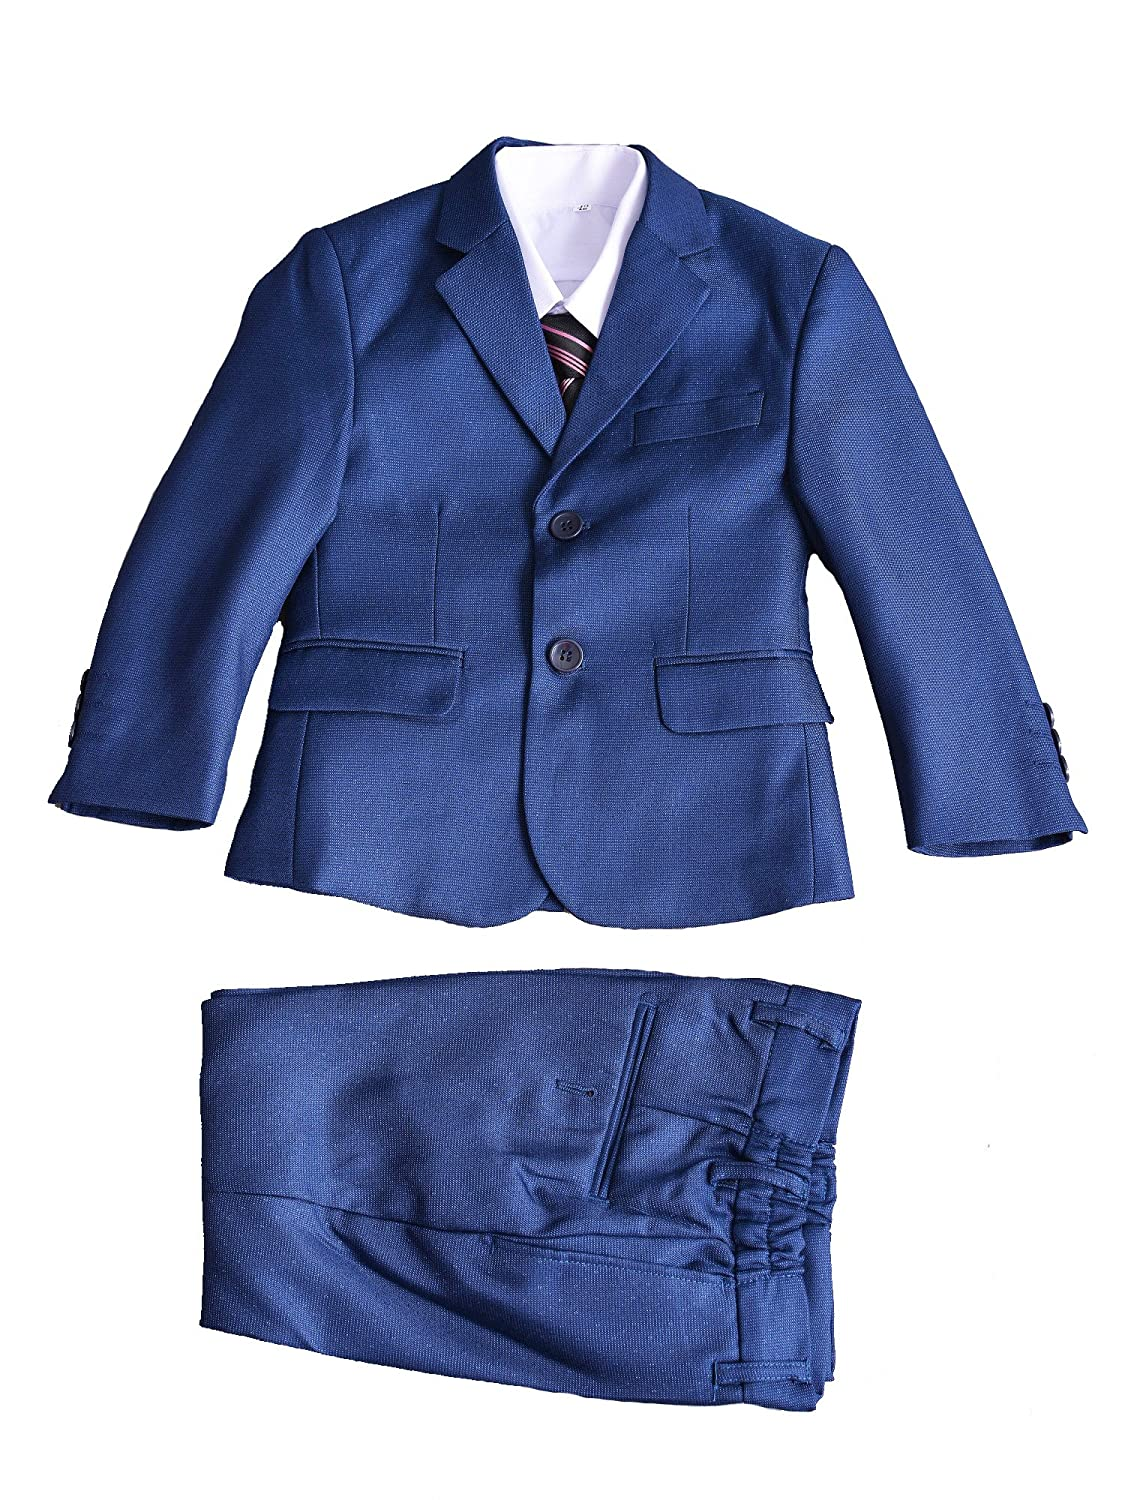 Cinda 5 Piece Boy Suits Boys Wedding Suit Page Boy Party Prom ZY160317